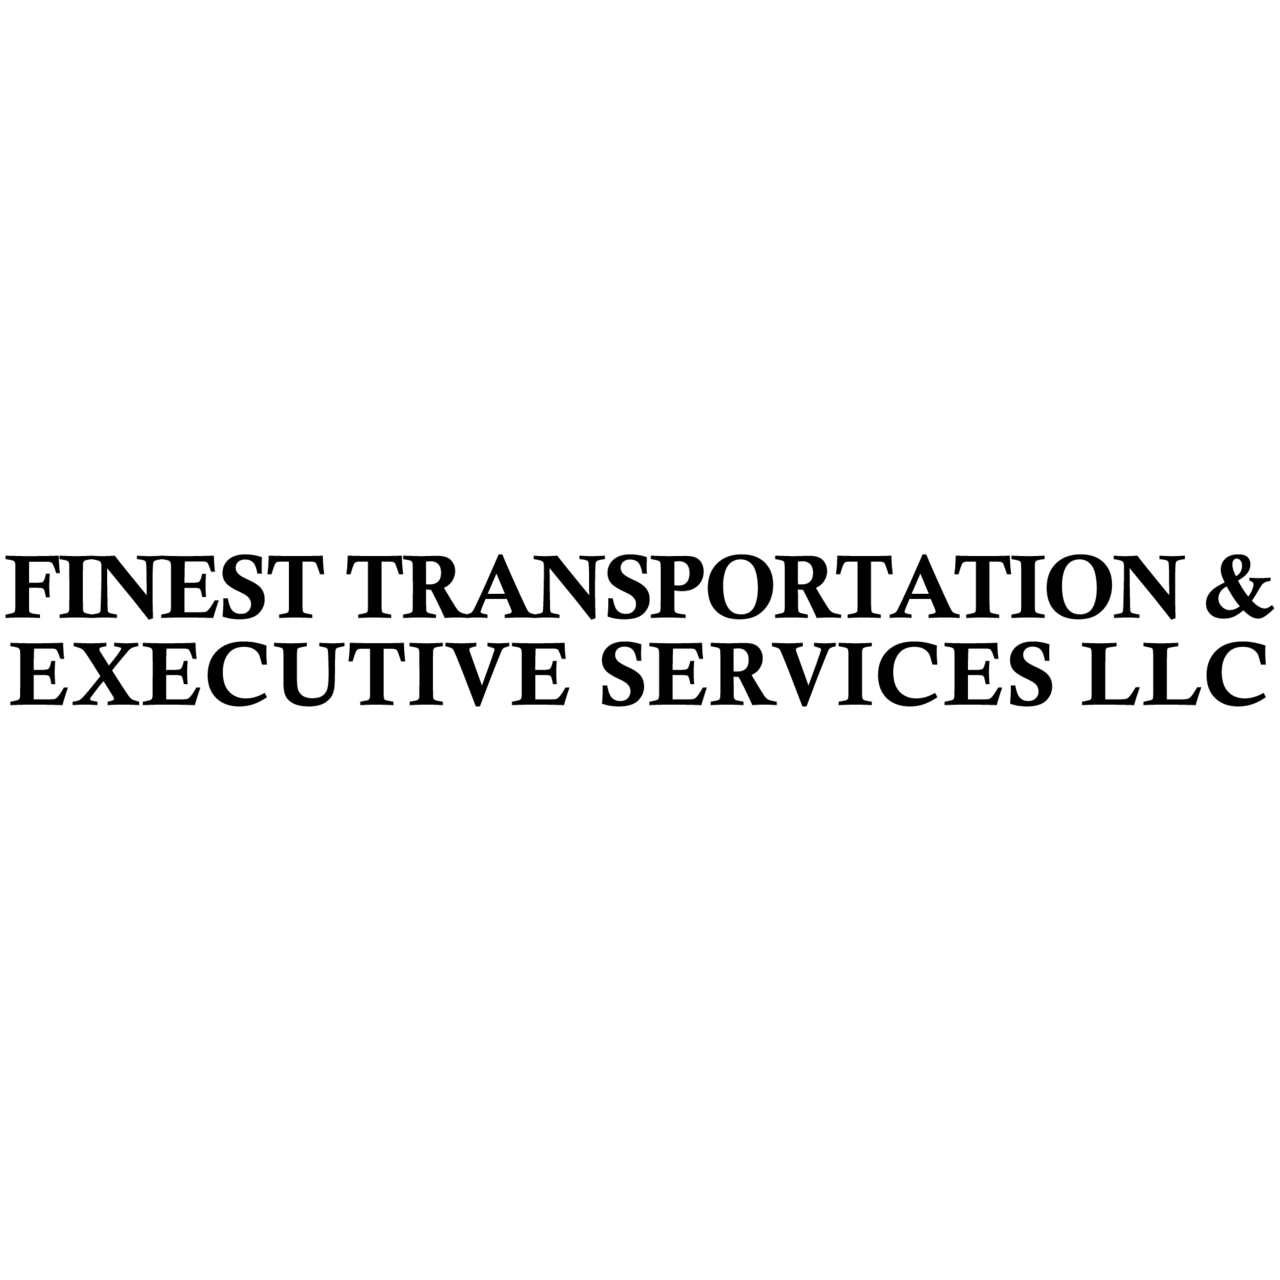 Finest Transportation And Executive Services LLC logo